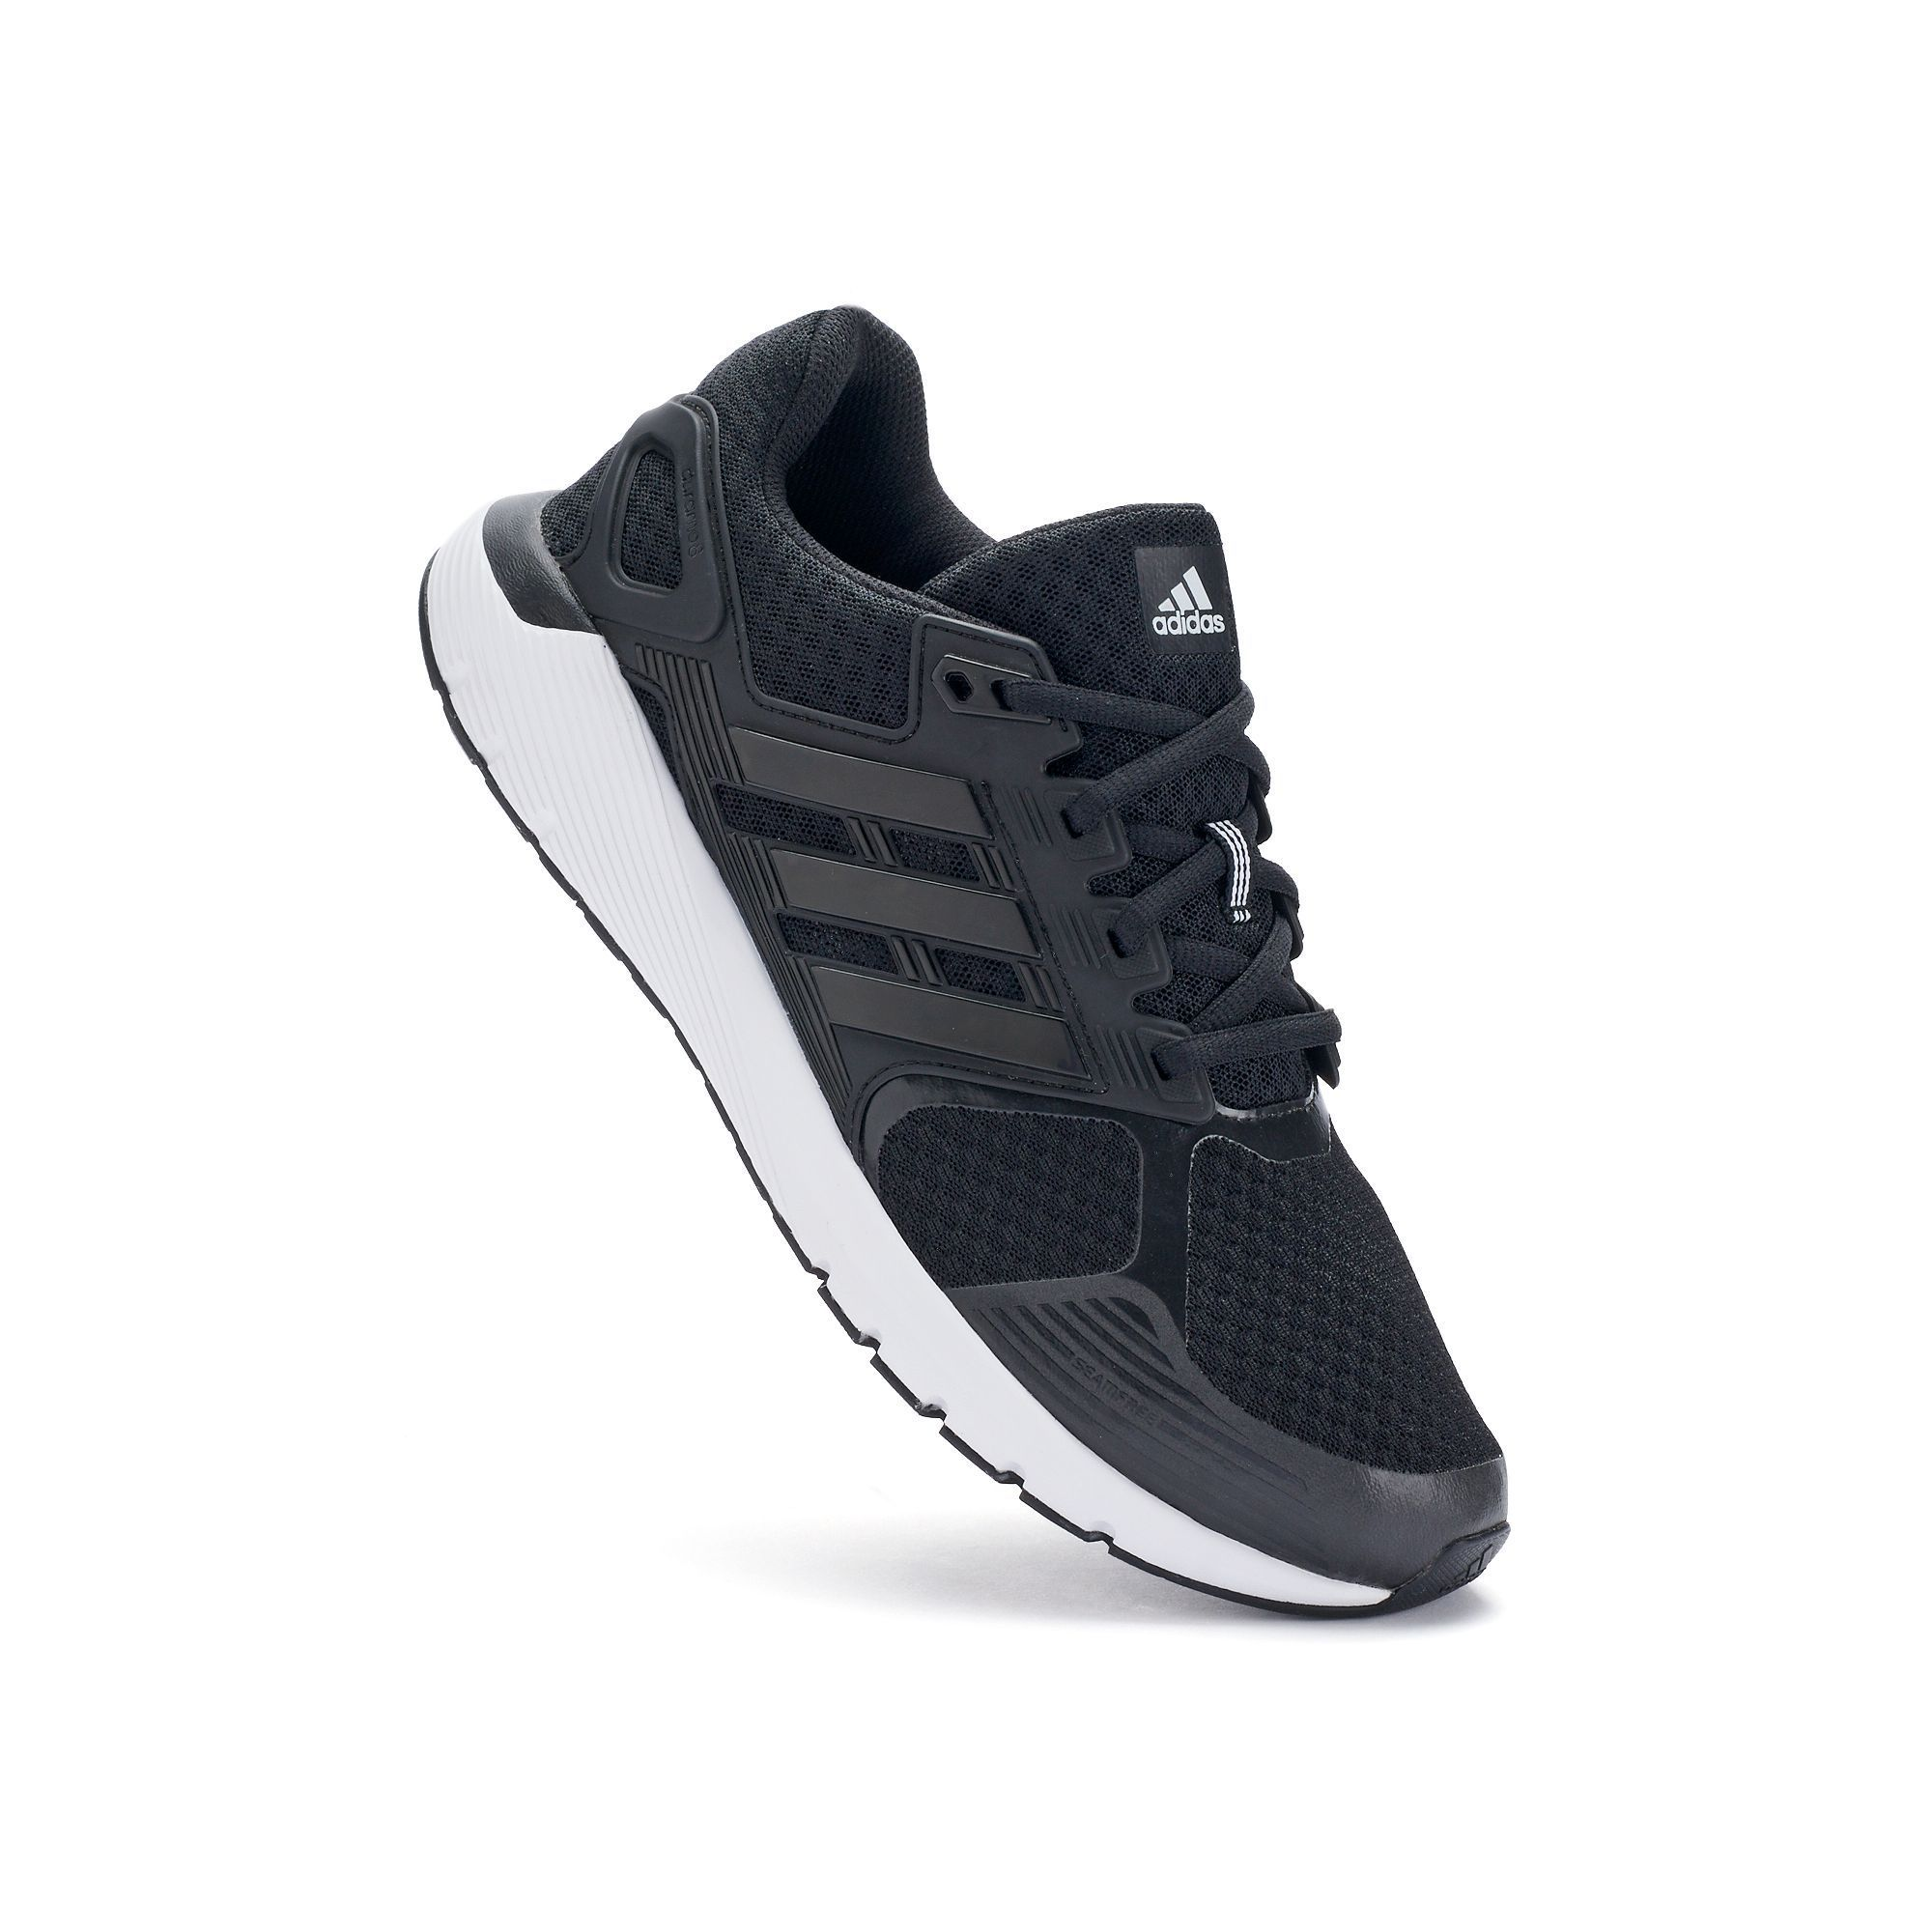 b21816121 adidas Duramo 8 Men s Running Shoes